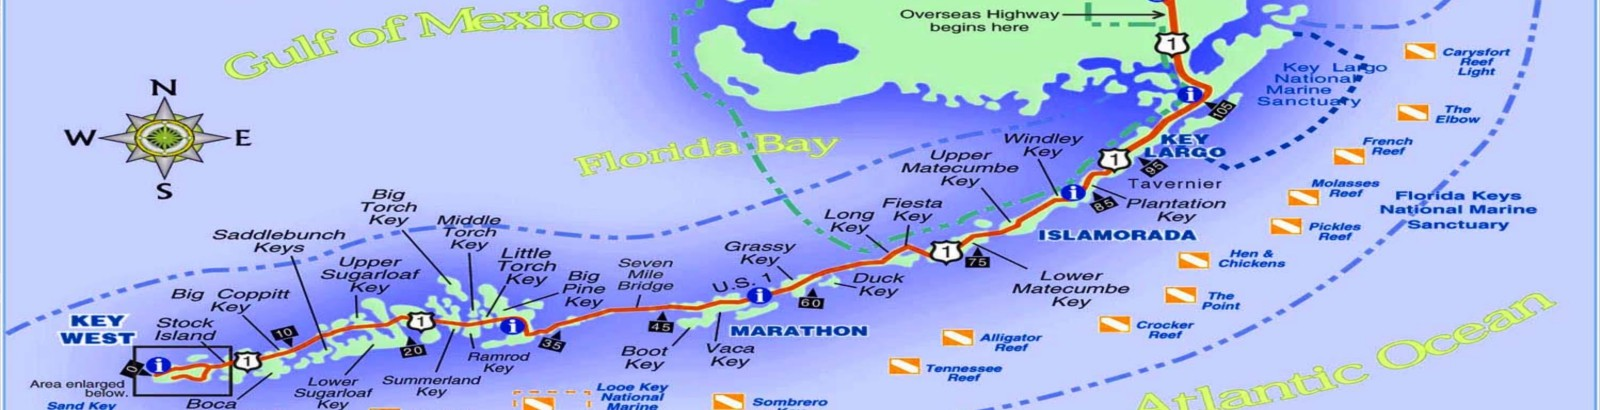 Map Of Florida Key West.Florida Keys Discounts Coupons Key Largo Islamorada Marathon